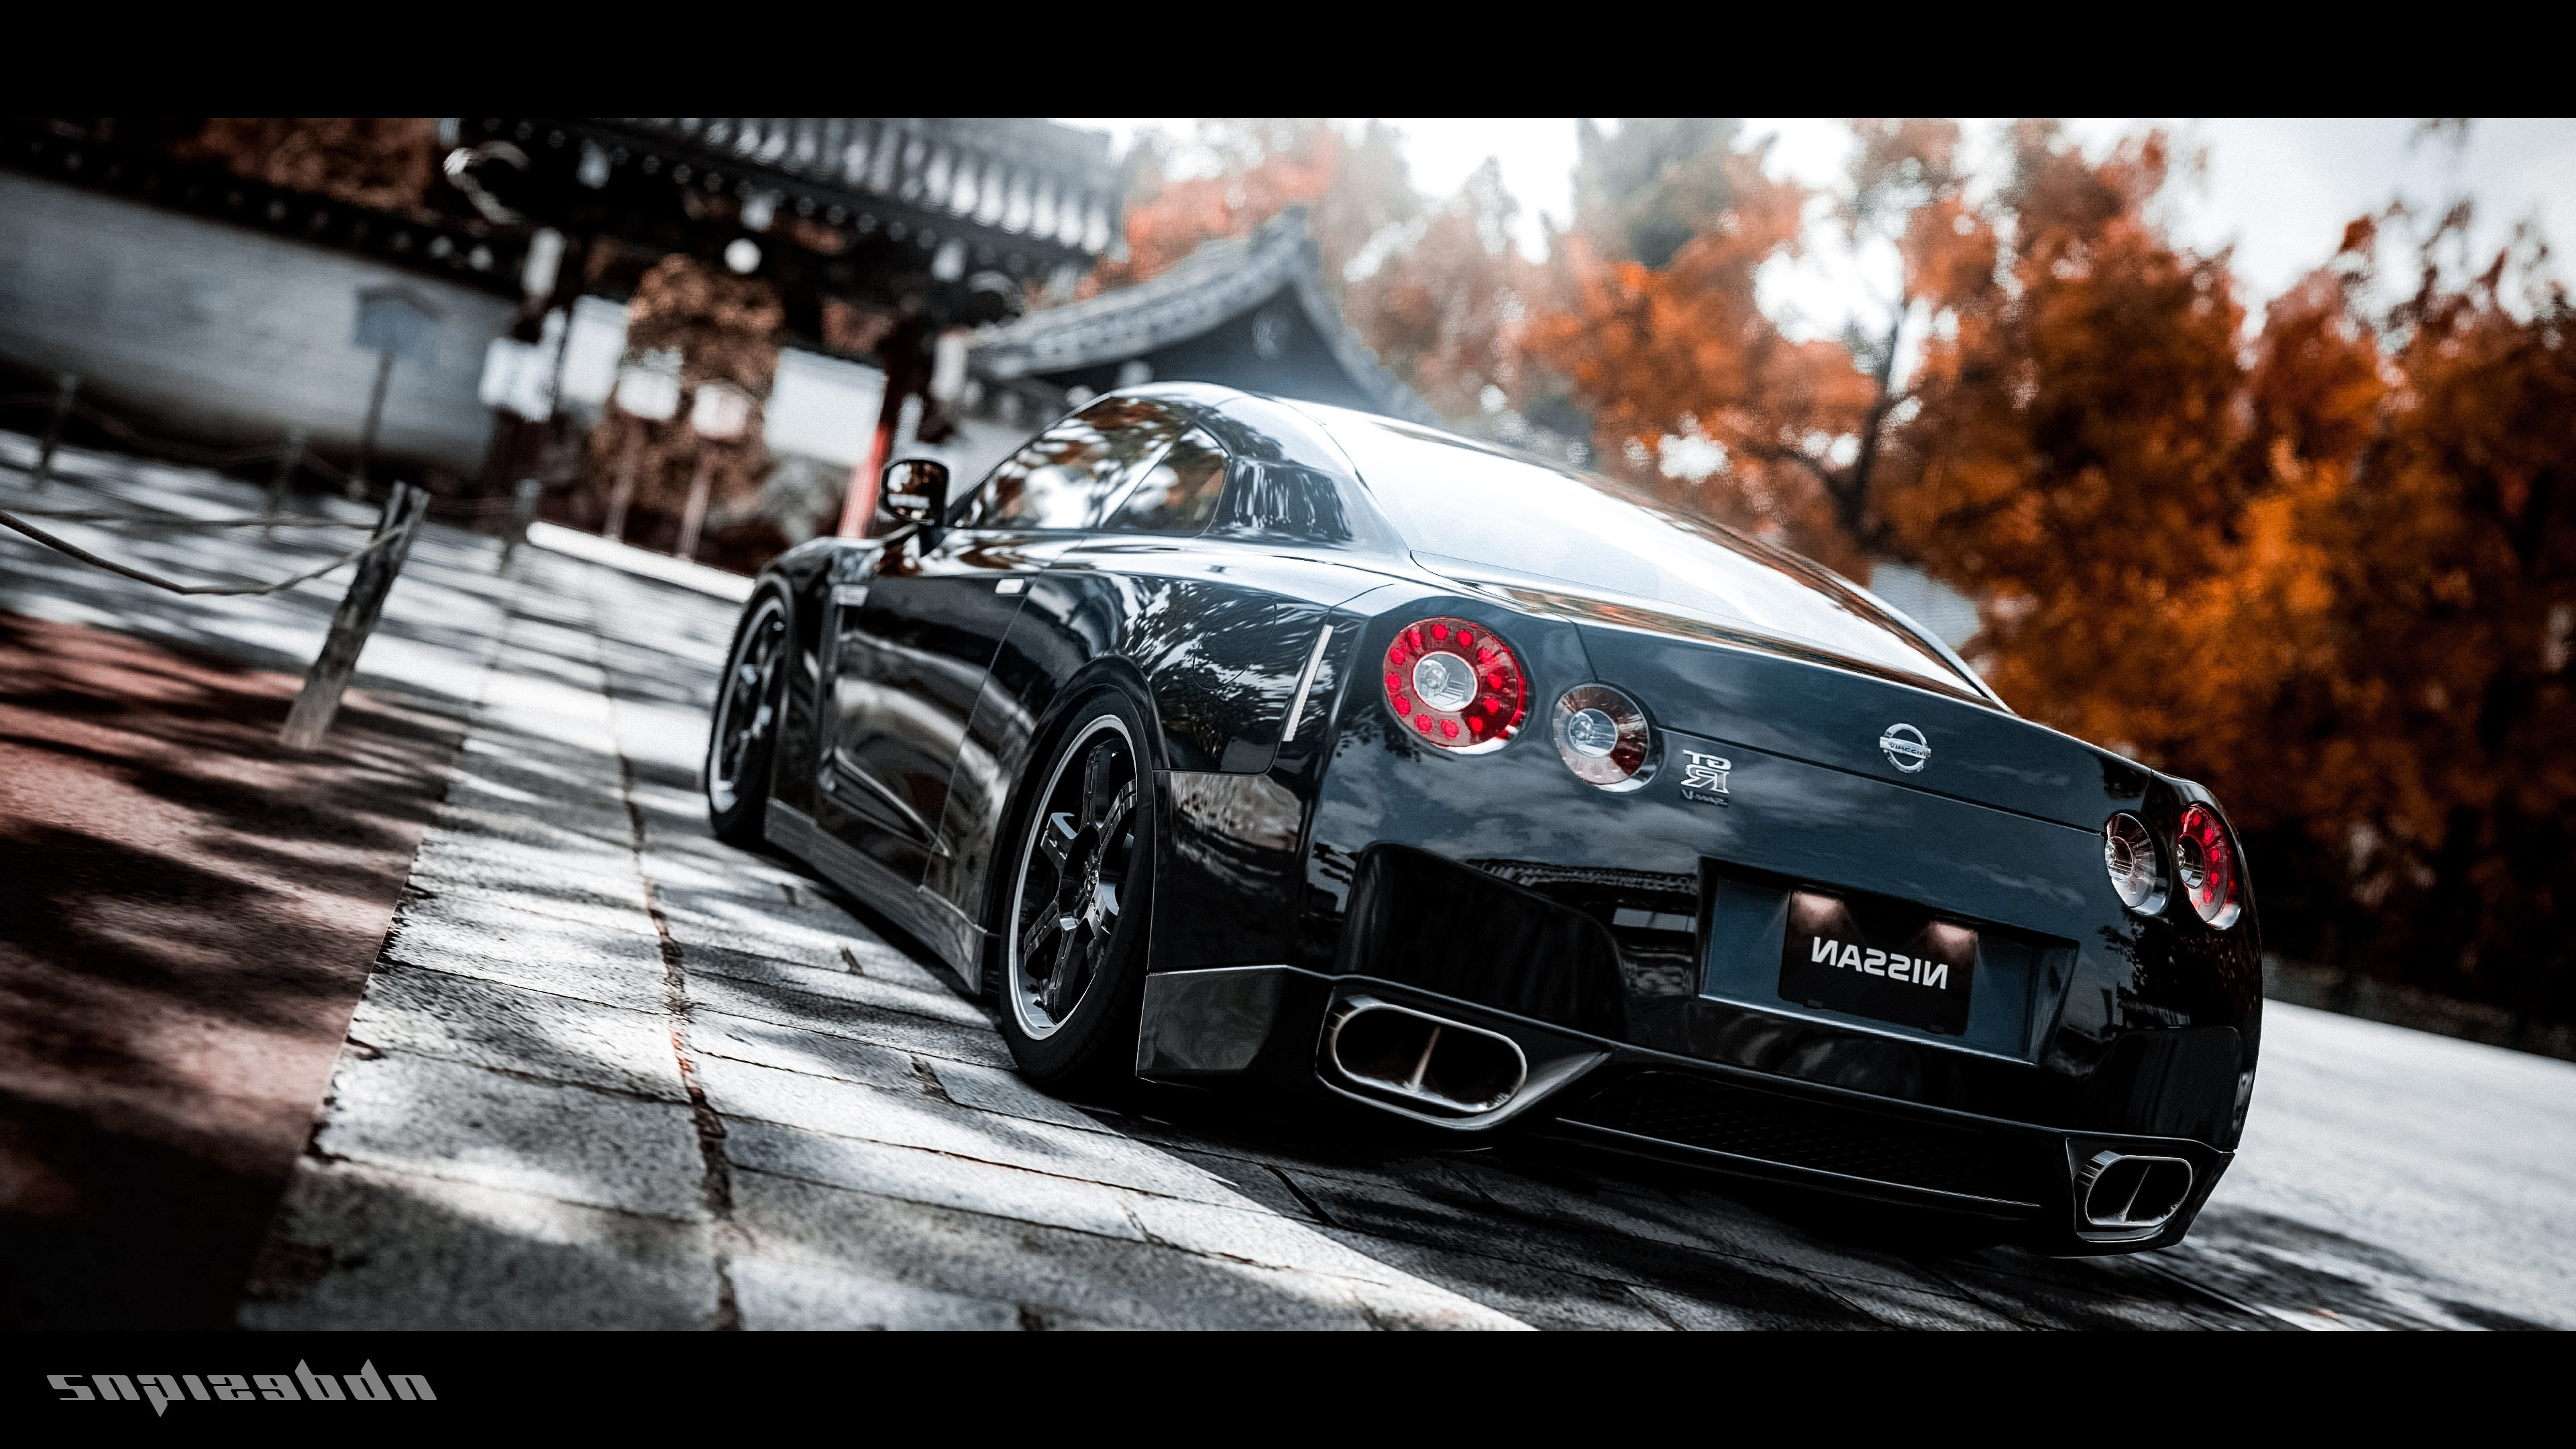 3840x2160 Nissan Gtr 2 4k Hd 4k Wallpapers Images Backgrounds